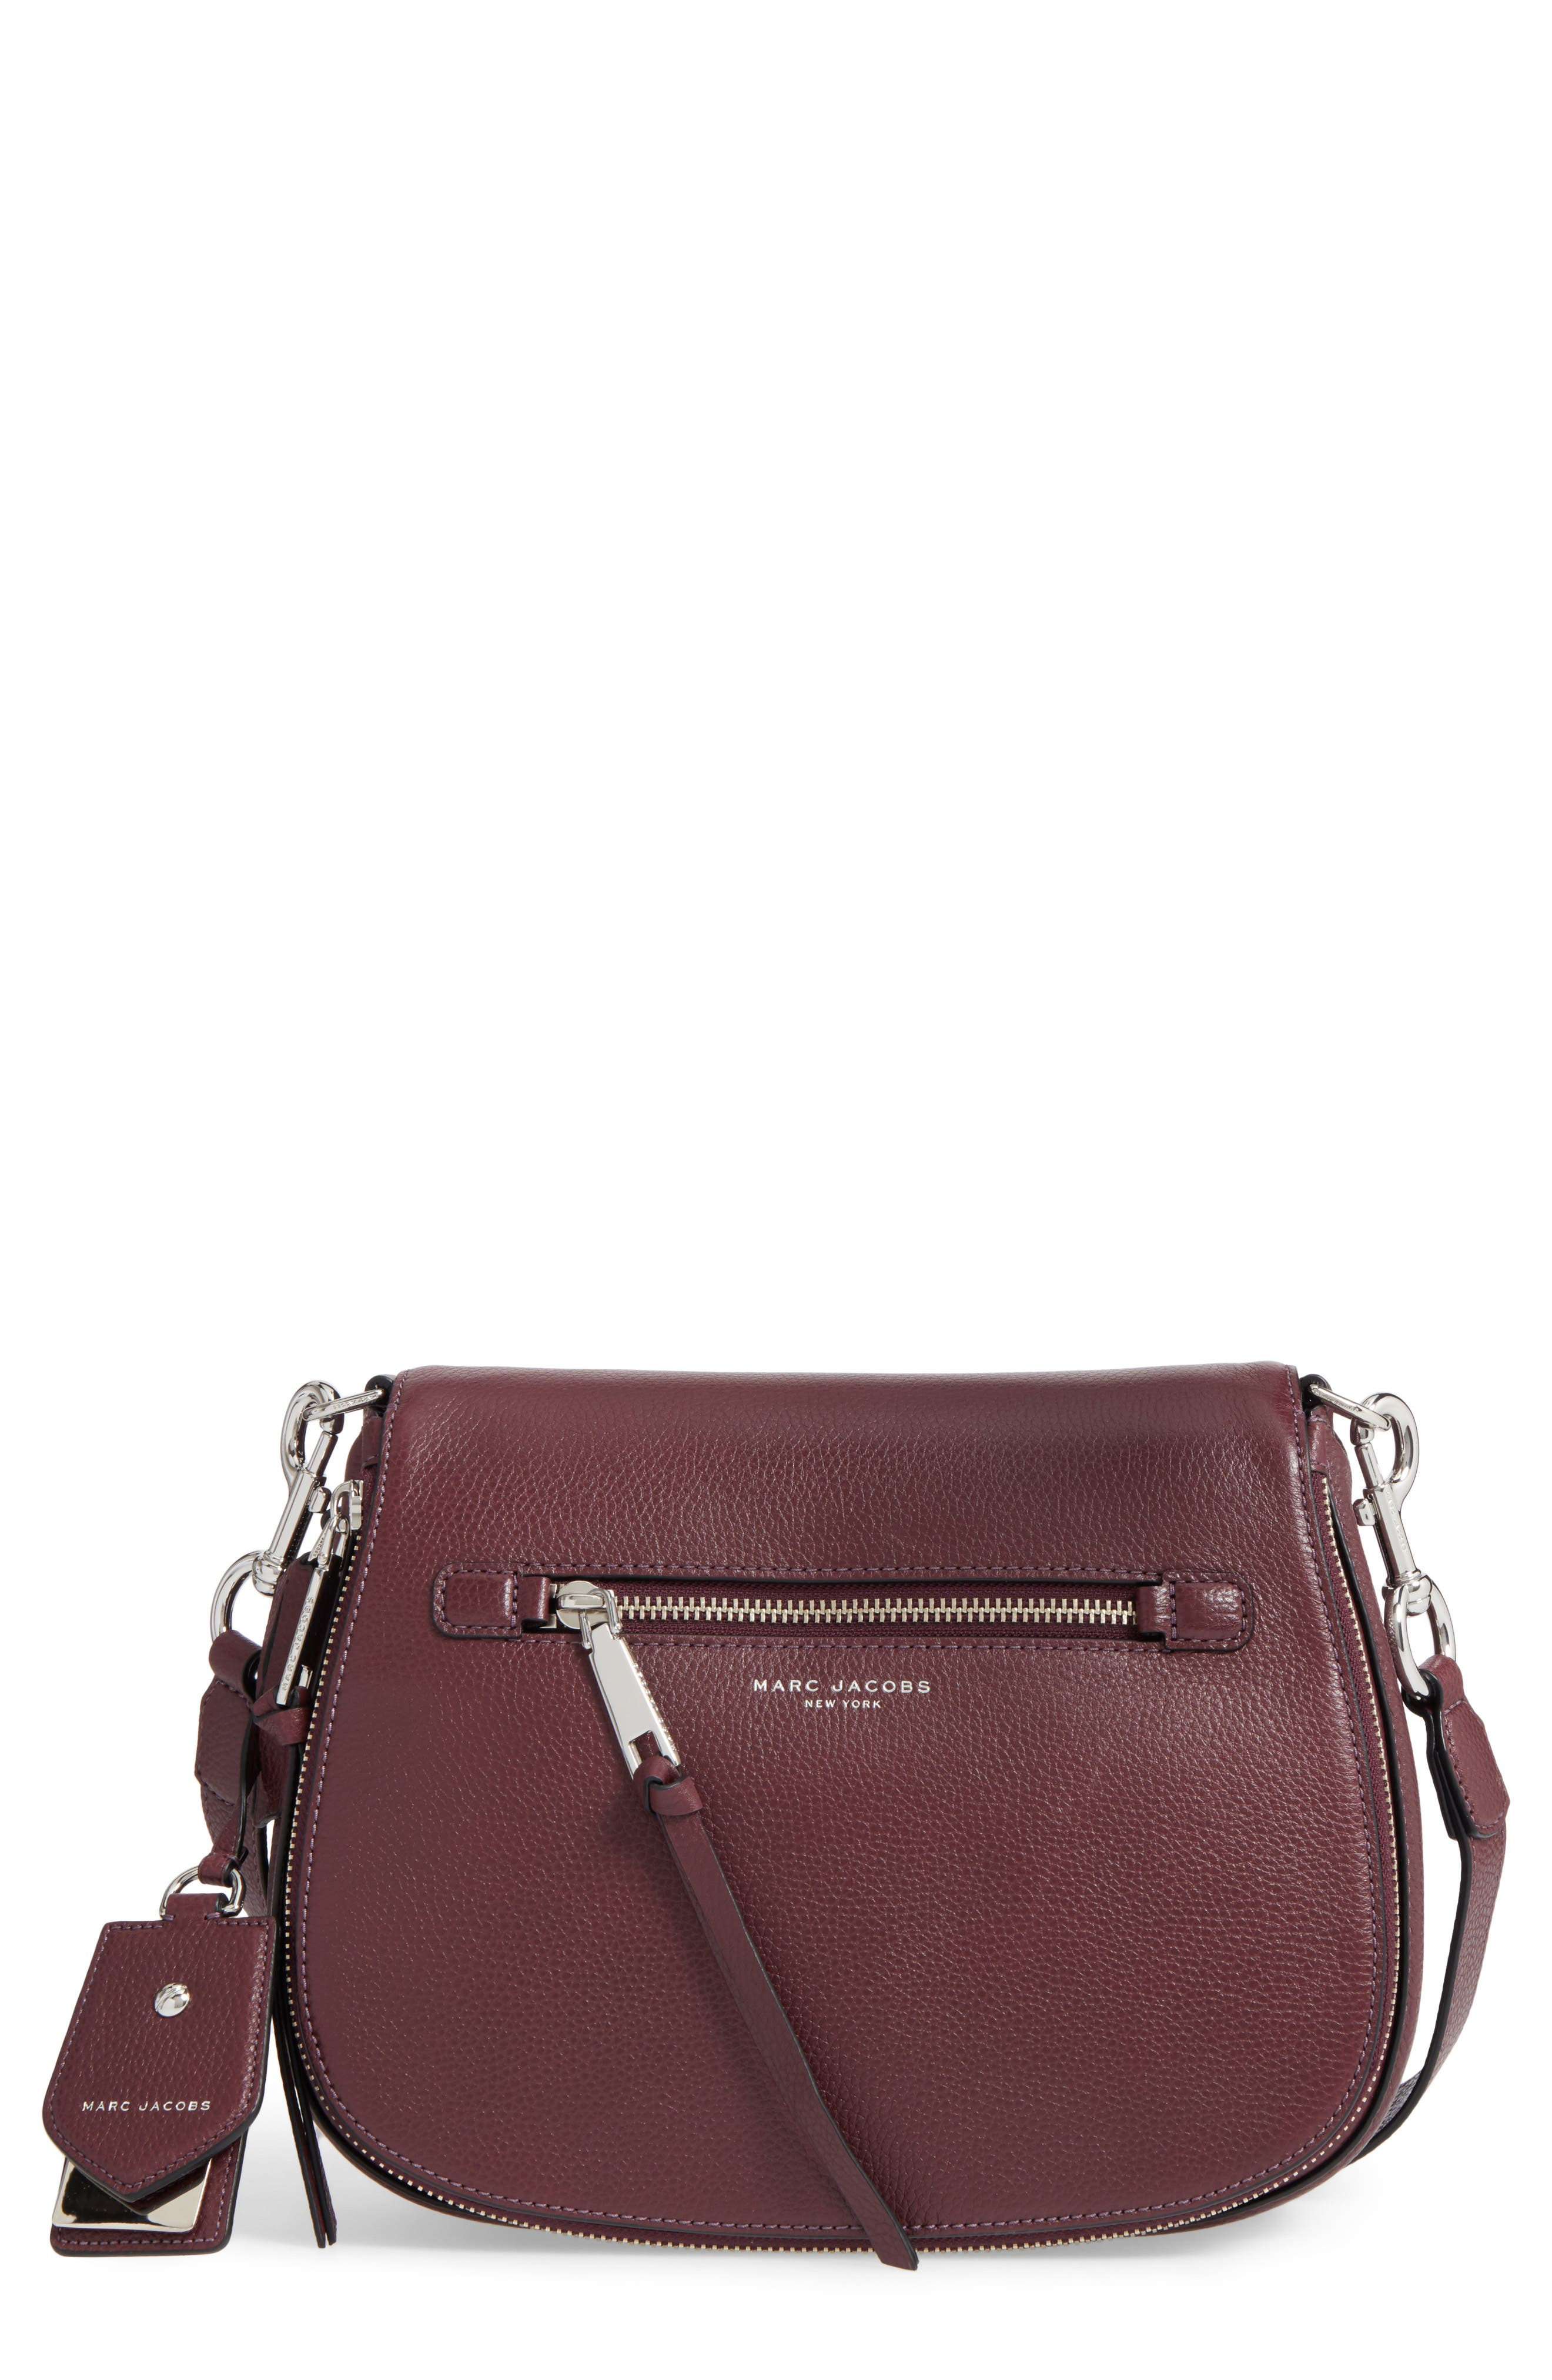 Recruit Nomad Pebbled Leather Crossbody Bag,                             Main thumbnail 1, color,                             538